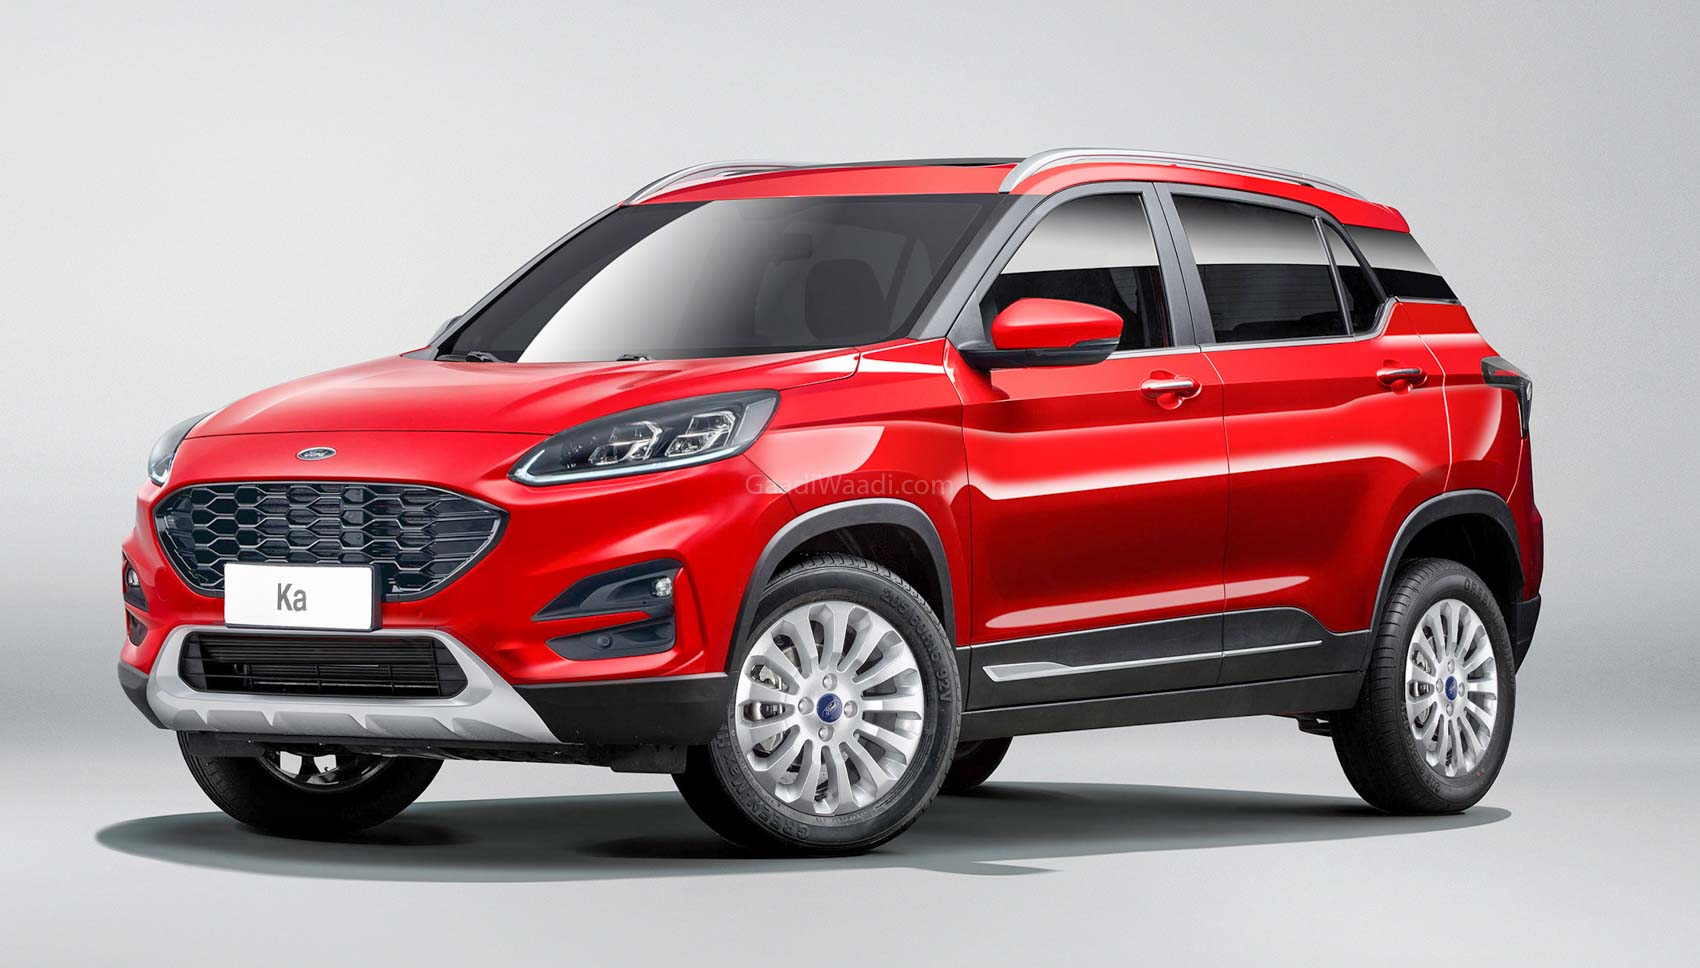 2021 Ford Ecosport Spesification